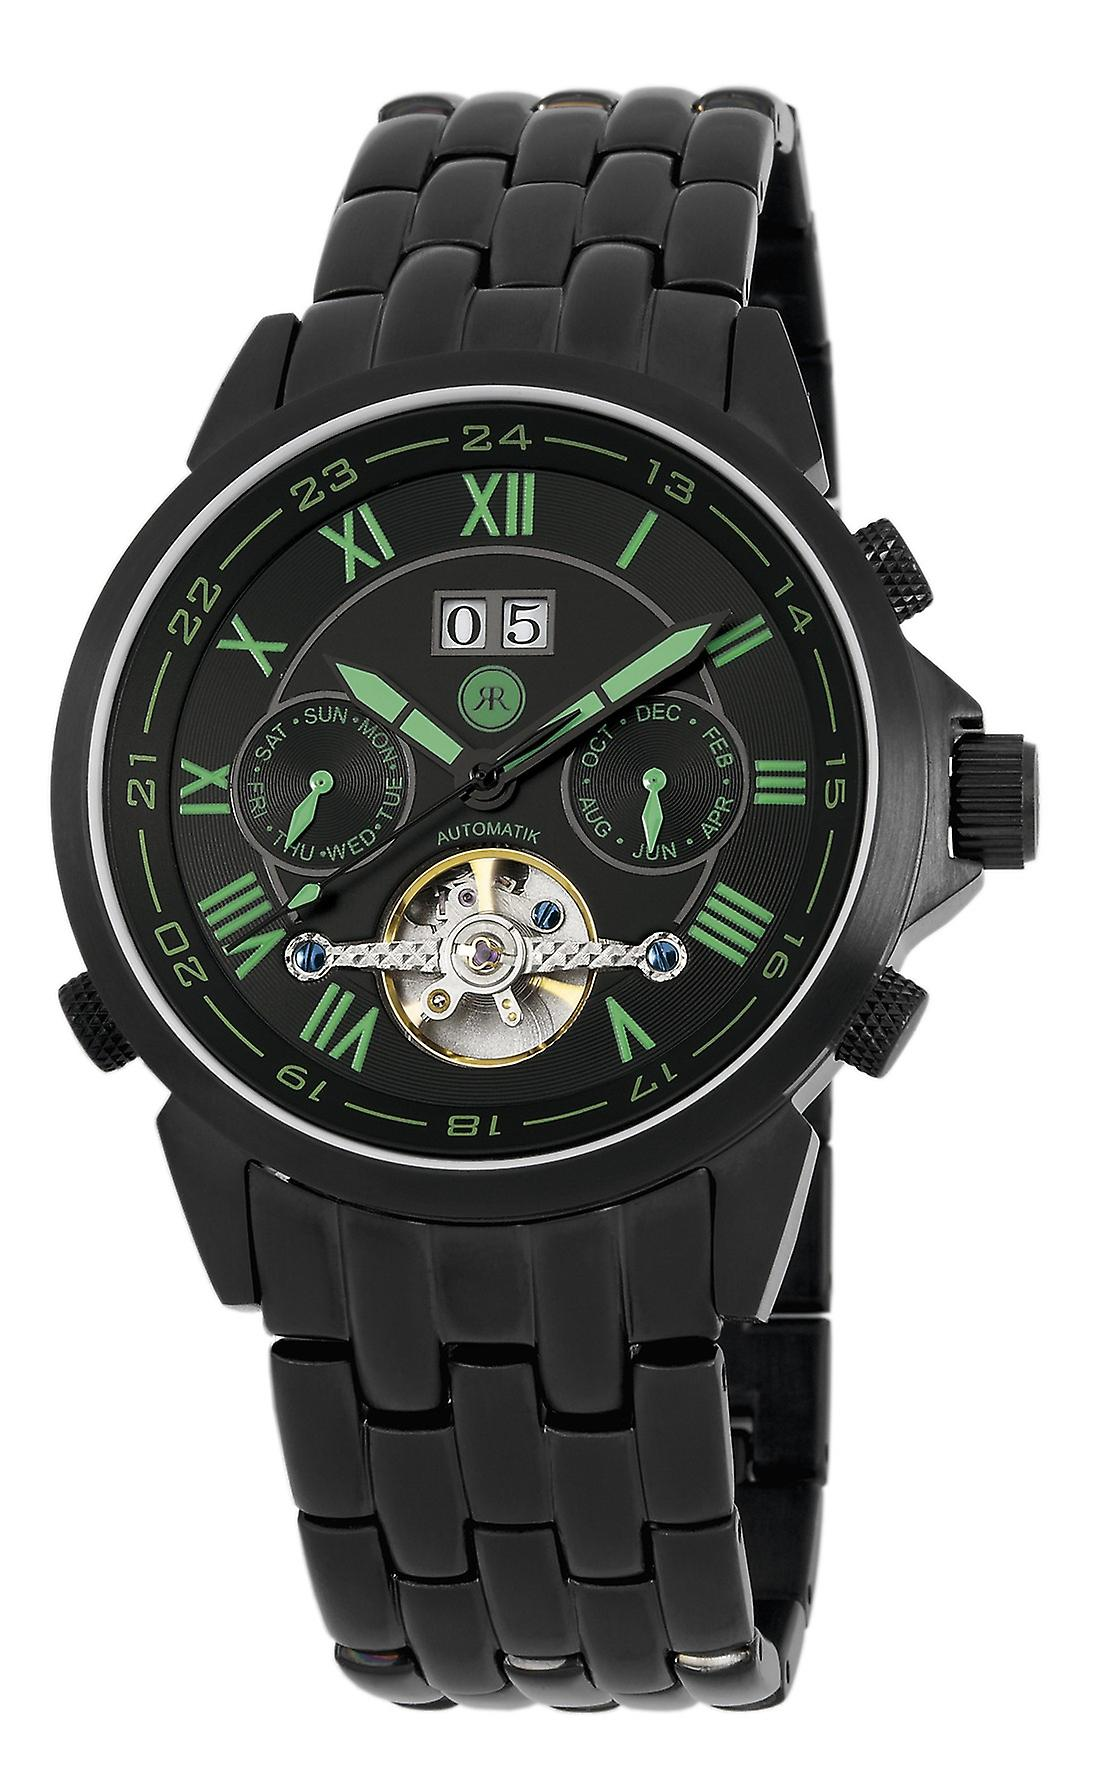 Reichenbach Gents automatic watch Egge, RB301-622B